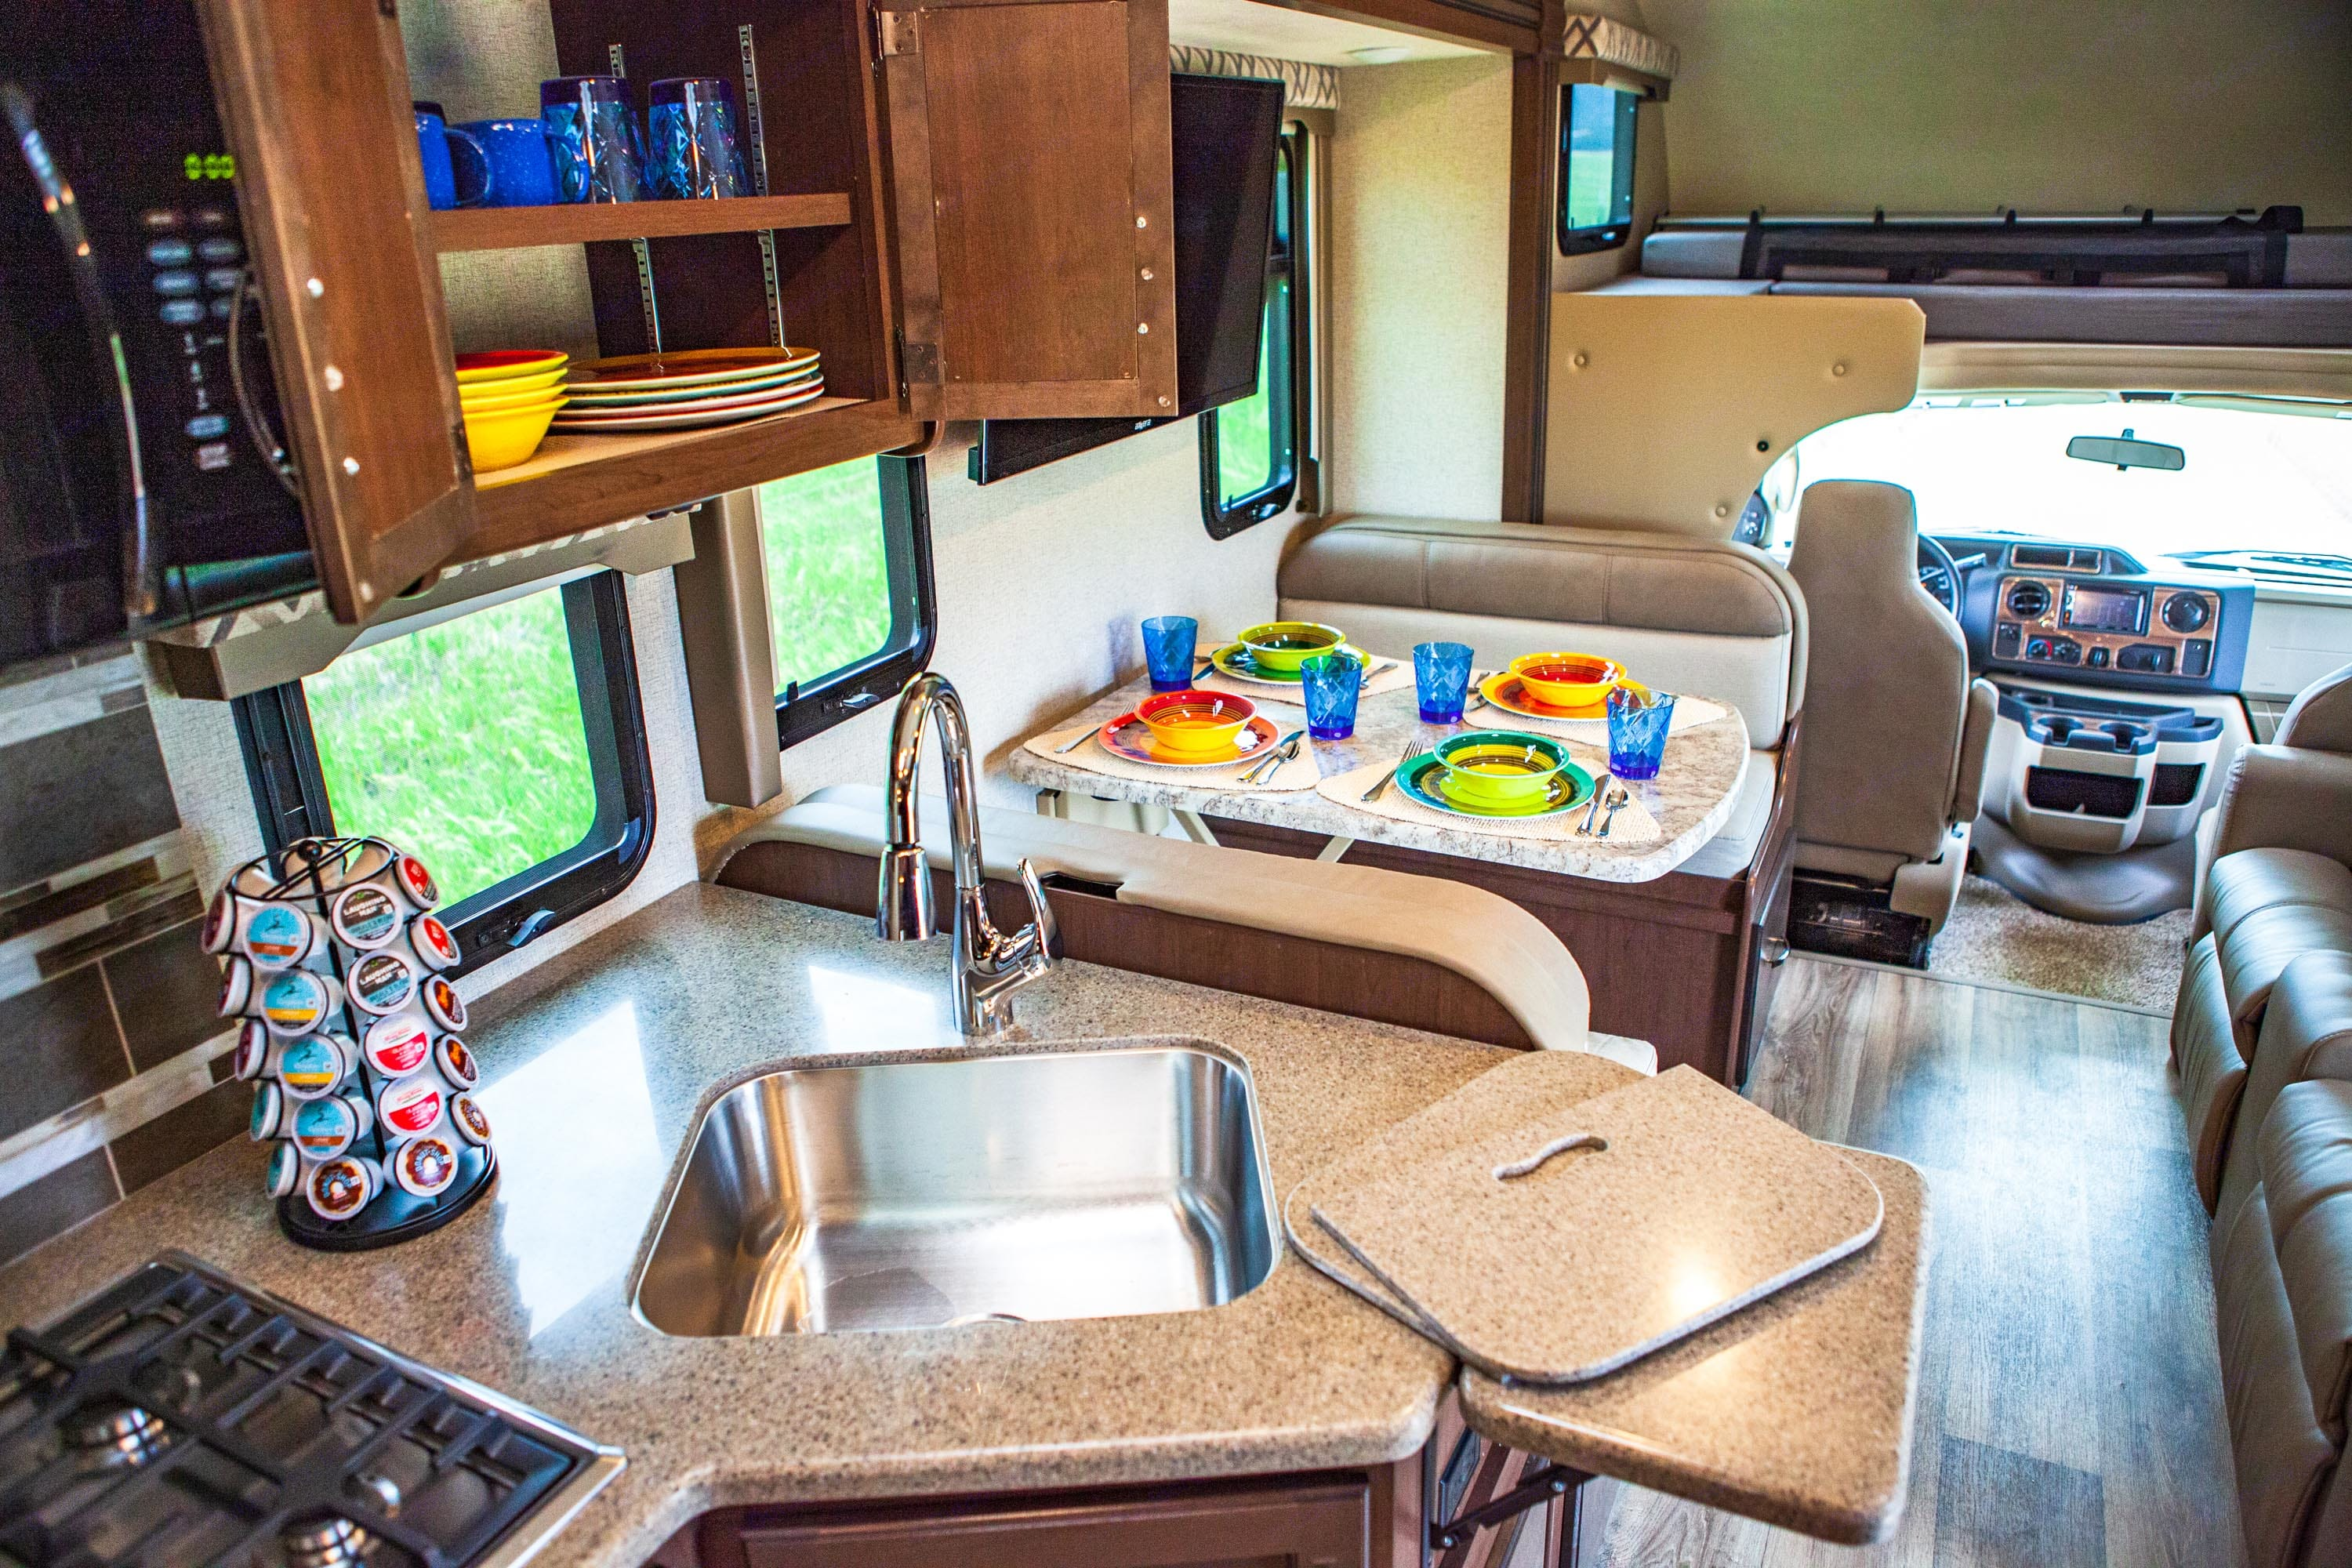 Also stocked with Keurig Coffee Maker w/ Coffee Selection & Creamers, Toaster, Food Storage Containers, Set of Mixing/Serving Bowls and more. Thor Motor Coach Four Winds 2020